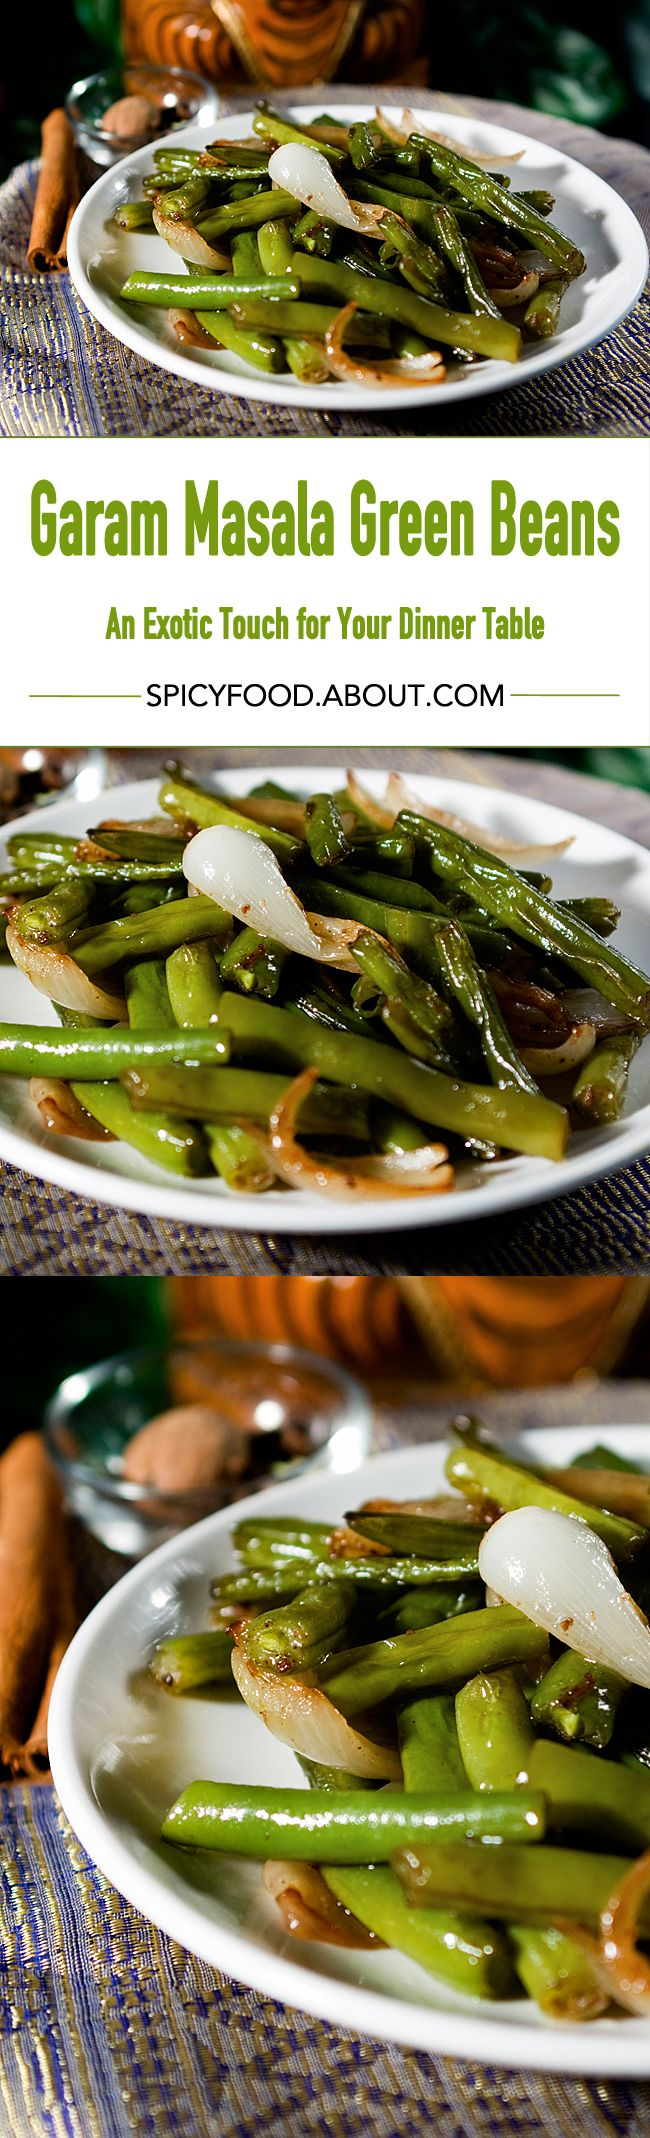 Garam Masala Green Beans: An Exotic Touch for Your Dinner Table | #garammasala #curried #greenbeans #vegan